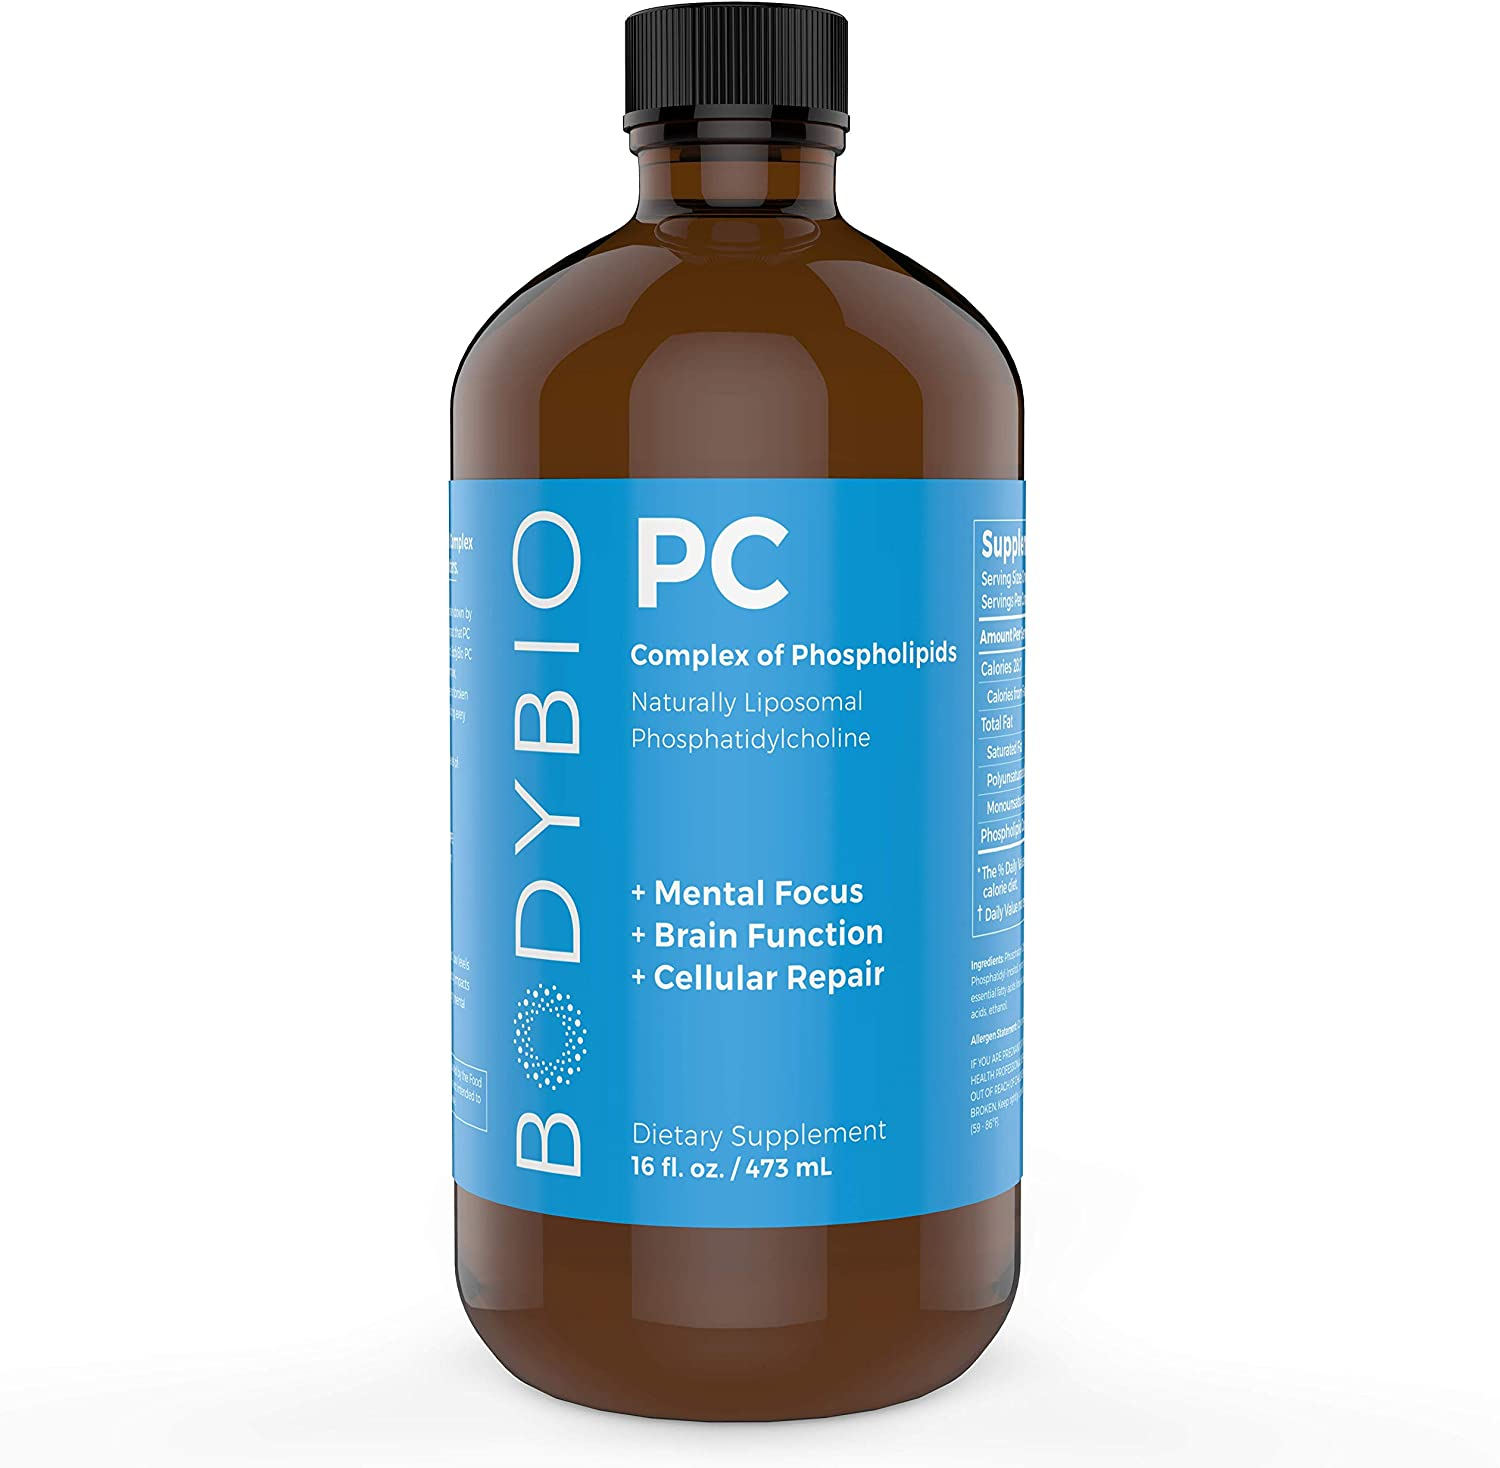 BodyBio PC Phosphatidylcholine + Phospholipids - 16 oz